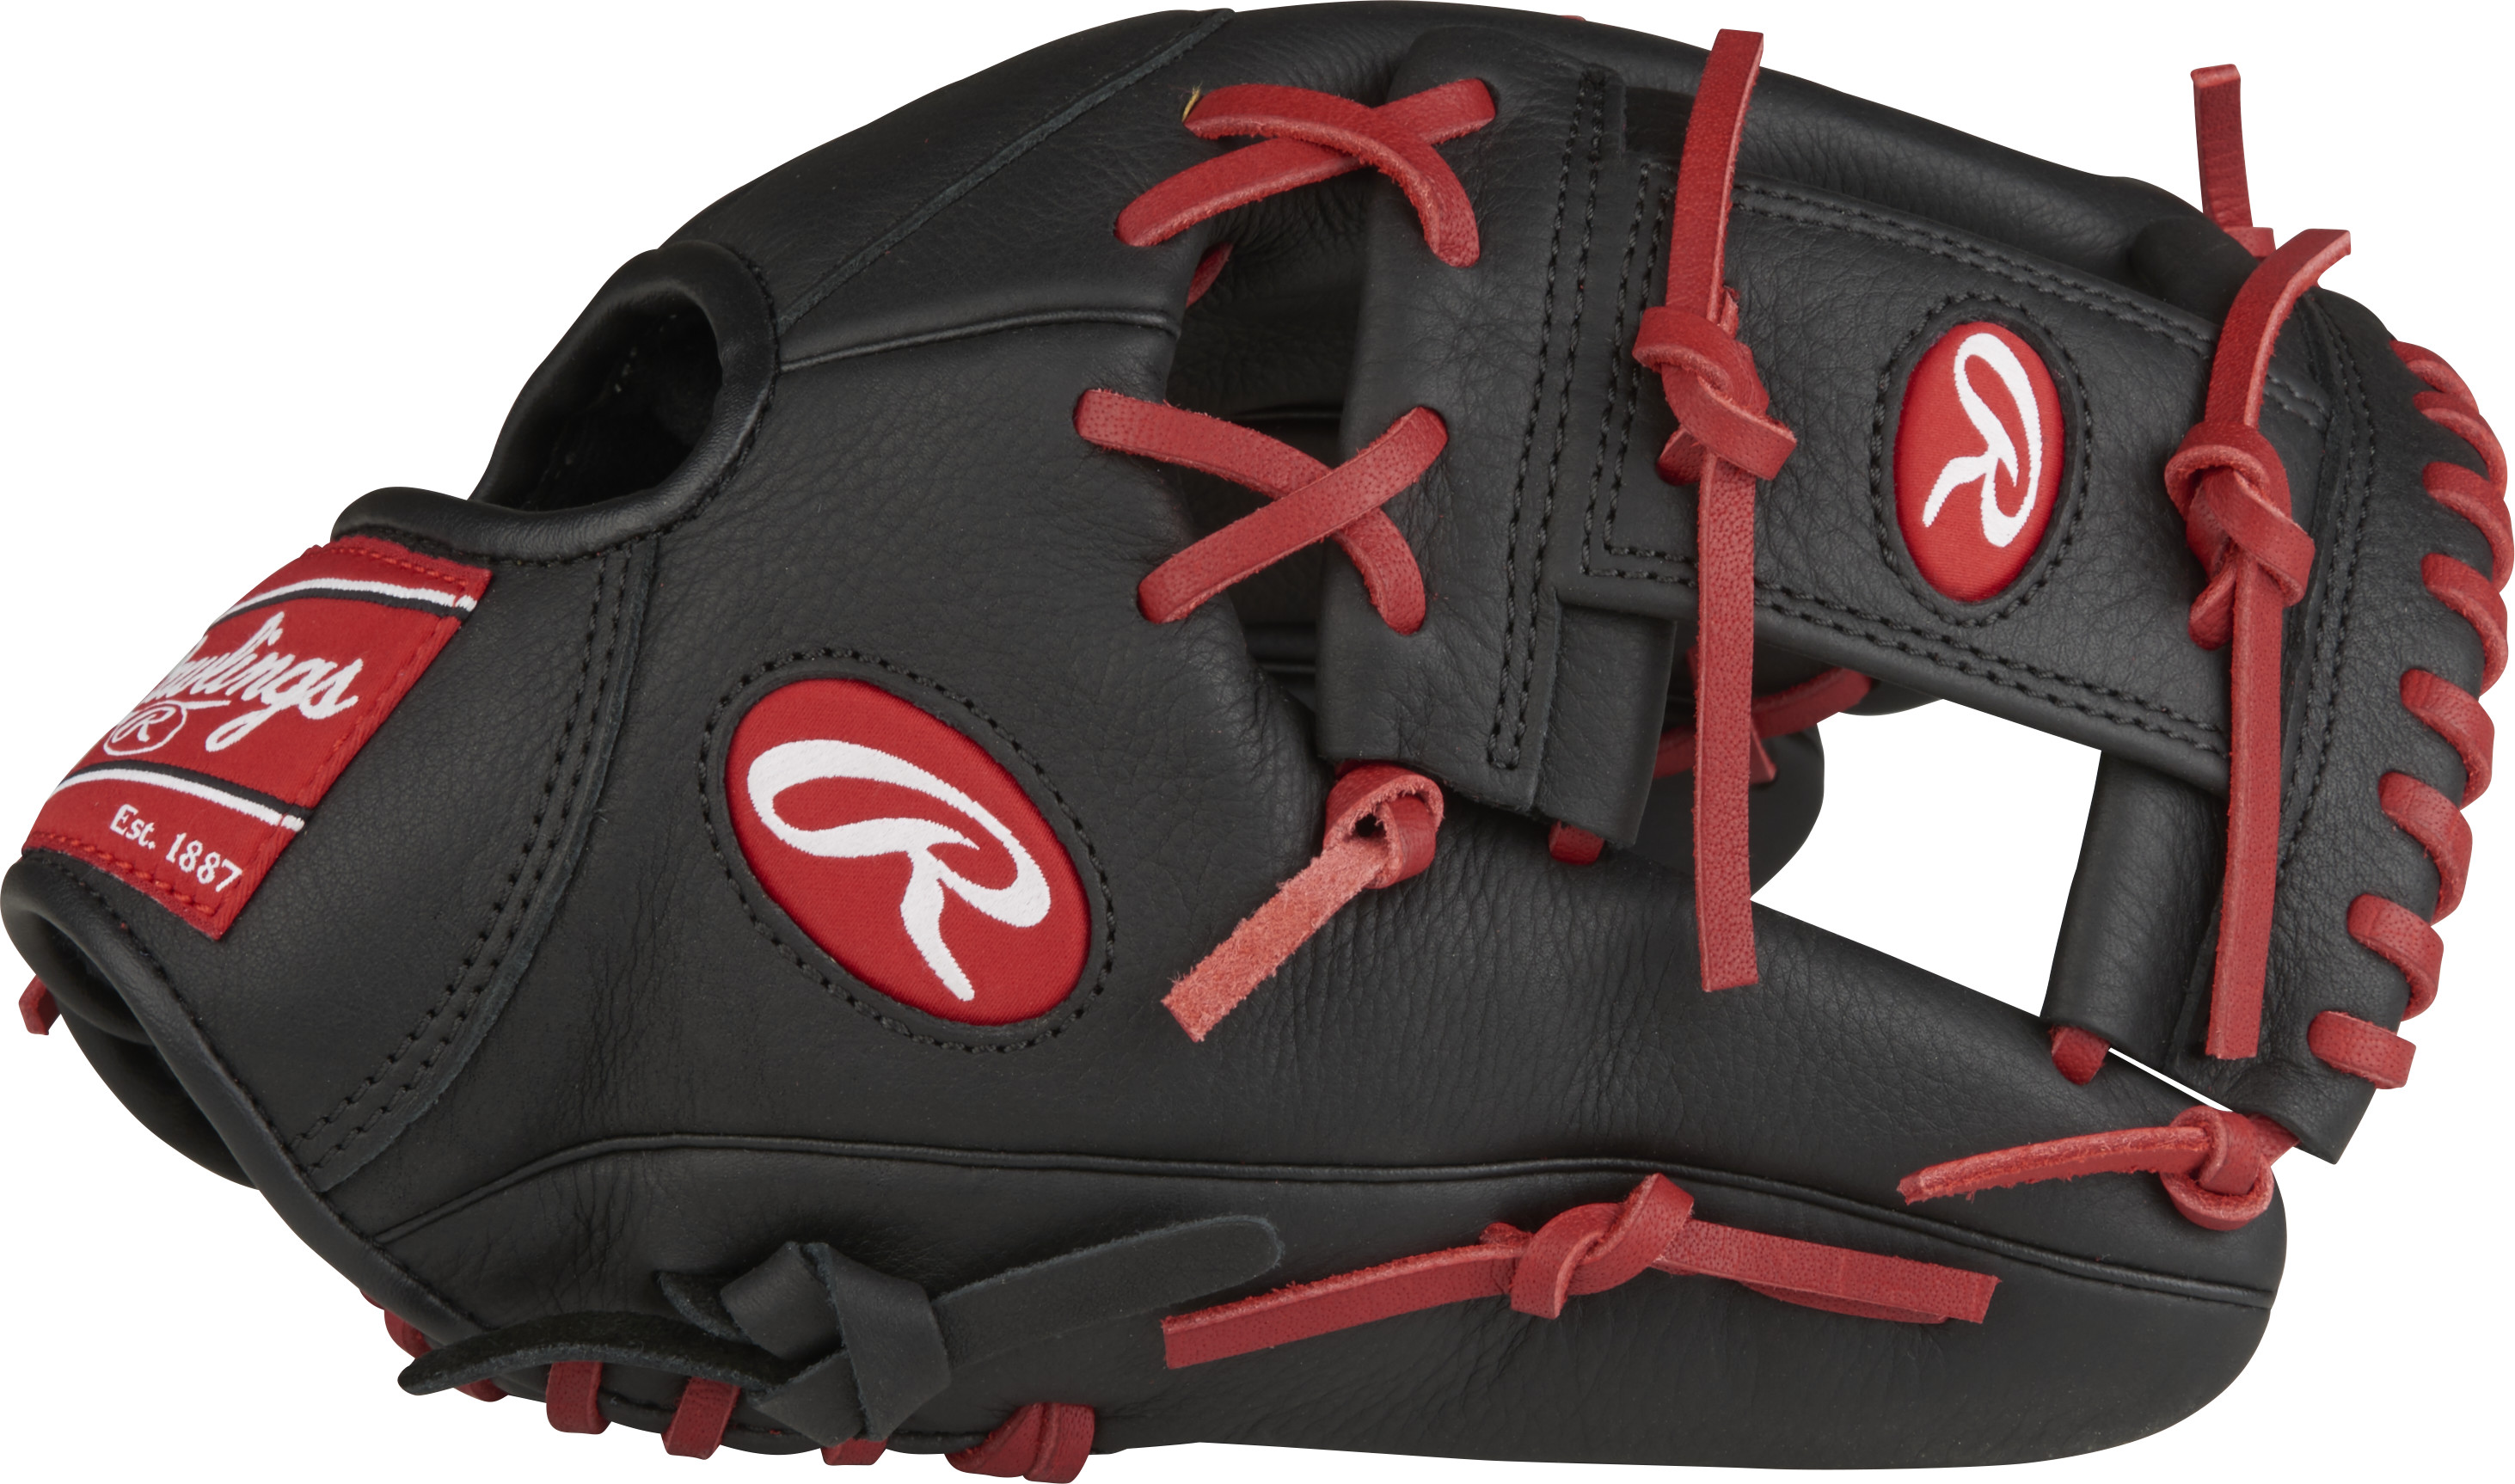 http://www.bestbatdeals.com/images/gloves/rawlings/SPL150FL-3.jpg